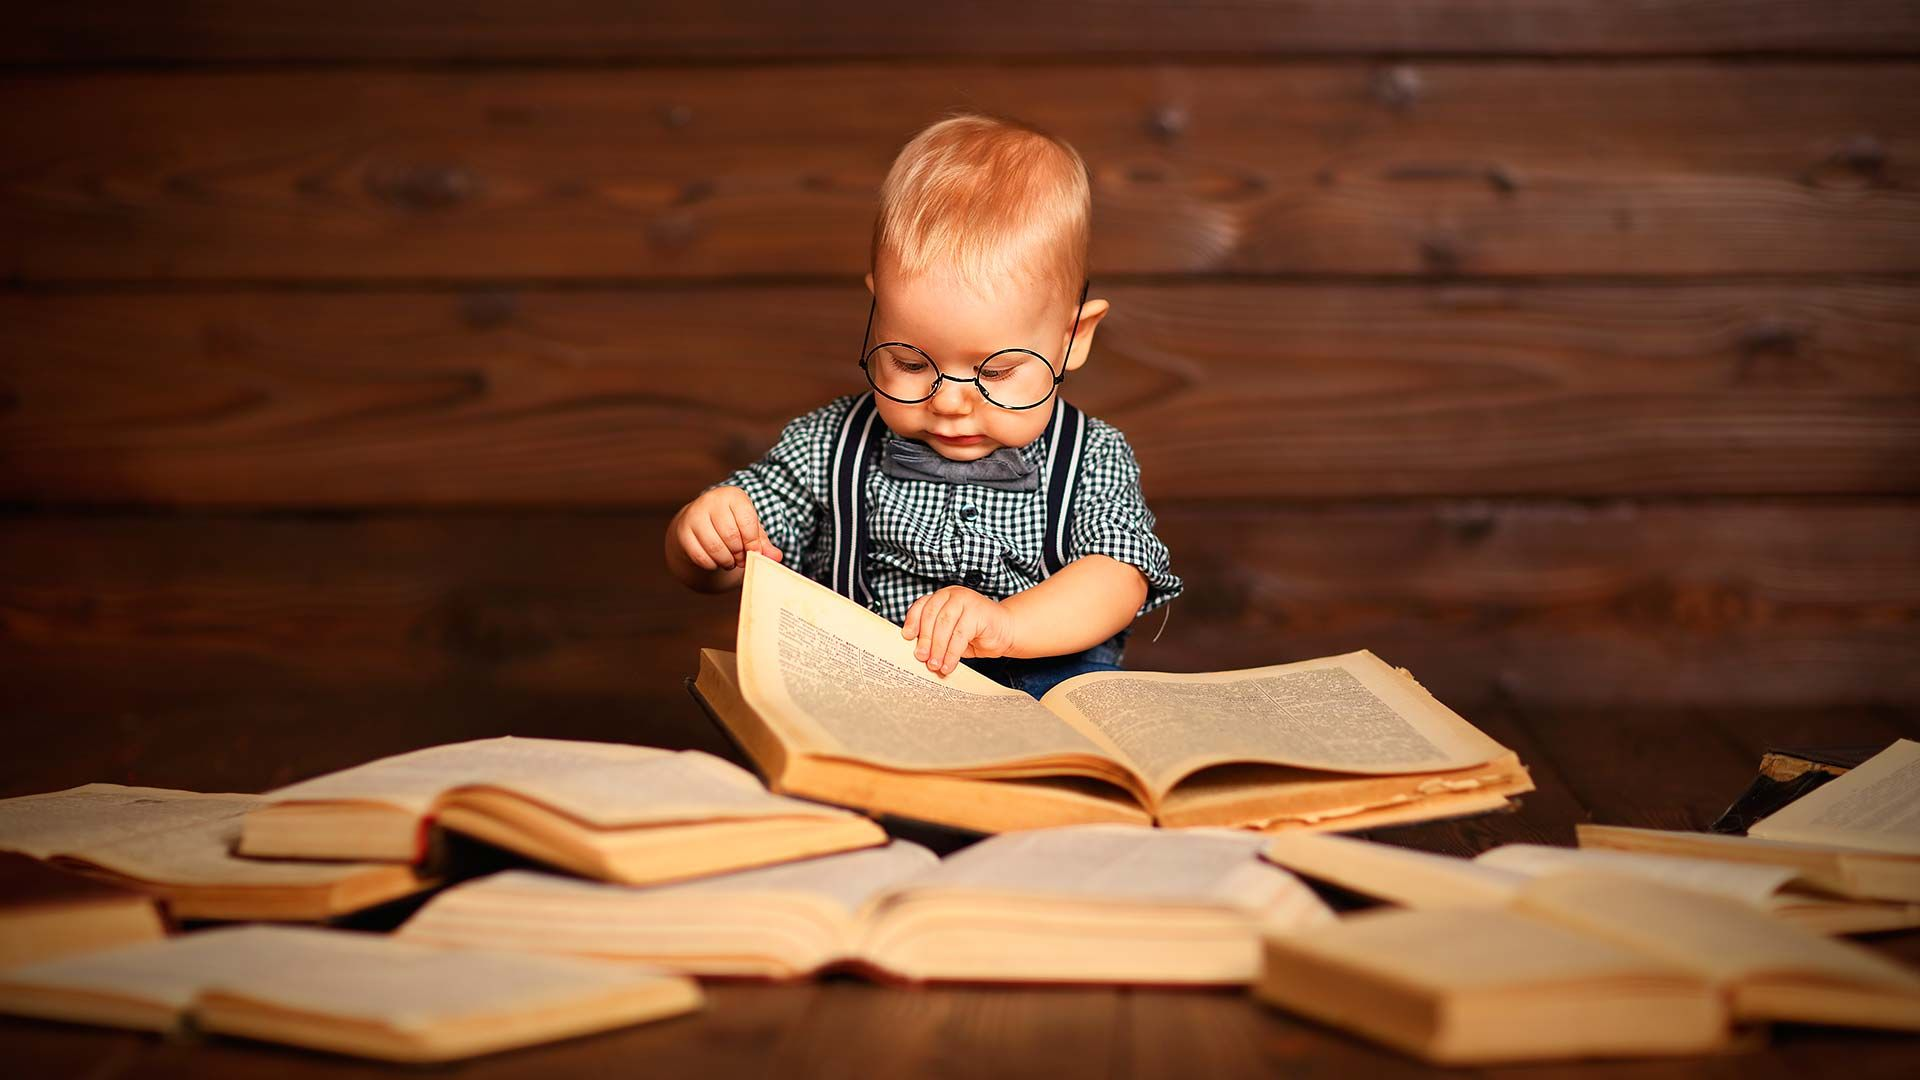 Note To Baby In Book Cool Wallpaper